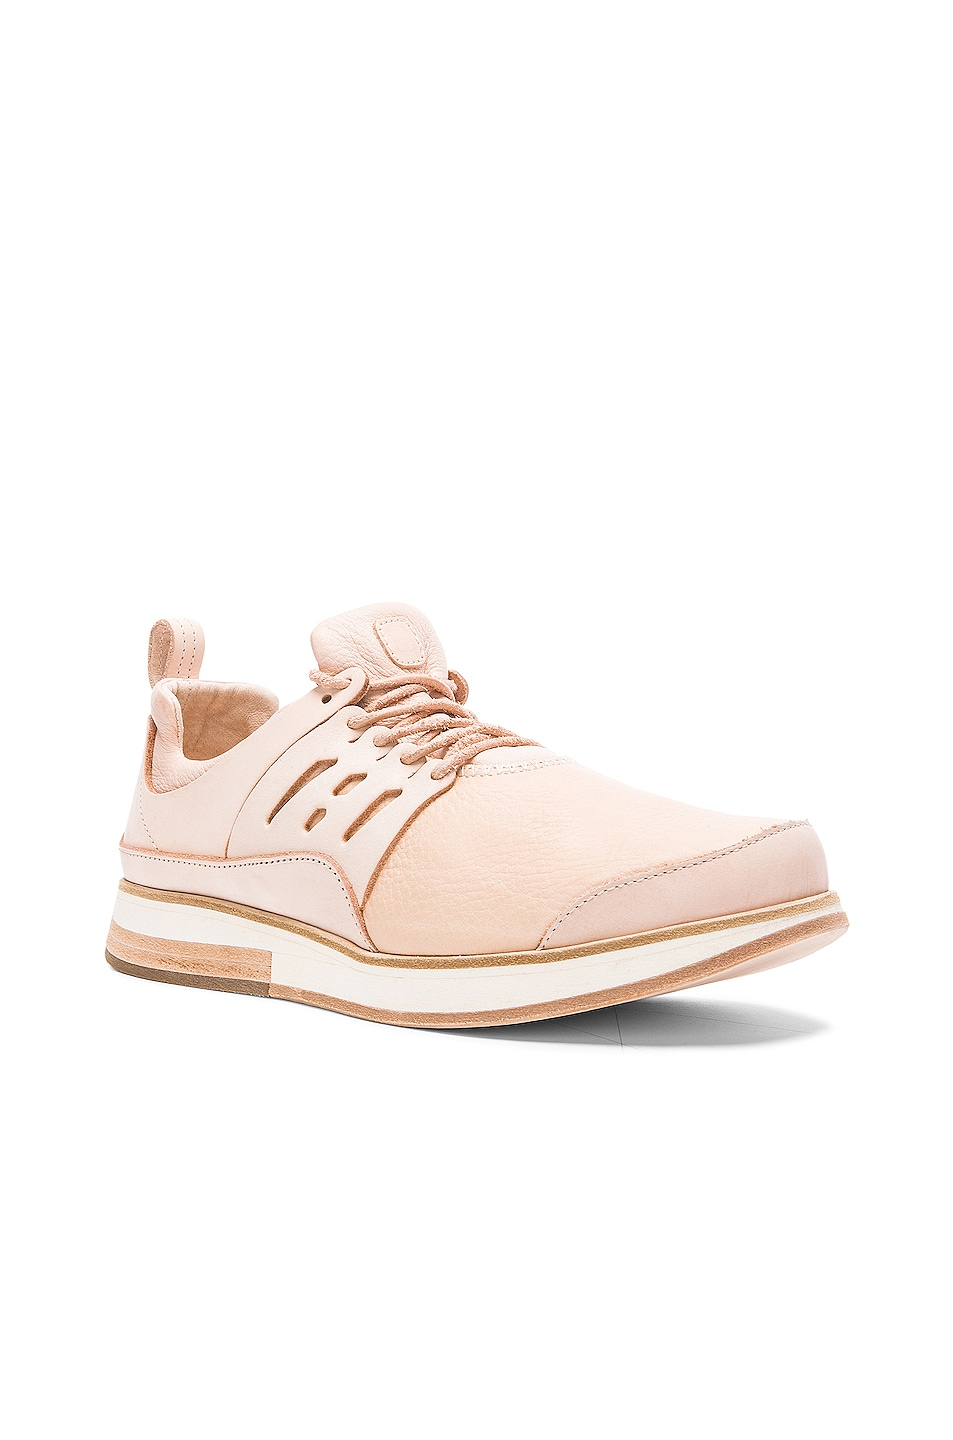 Image 2 of Hender Scheme Manual Industrial Product 12 in Natural